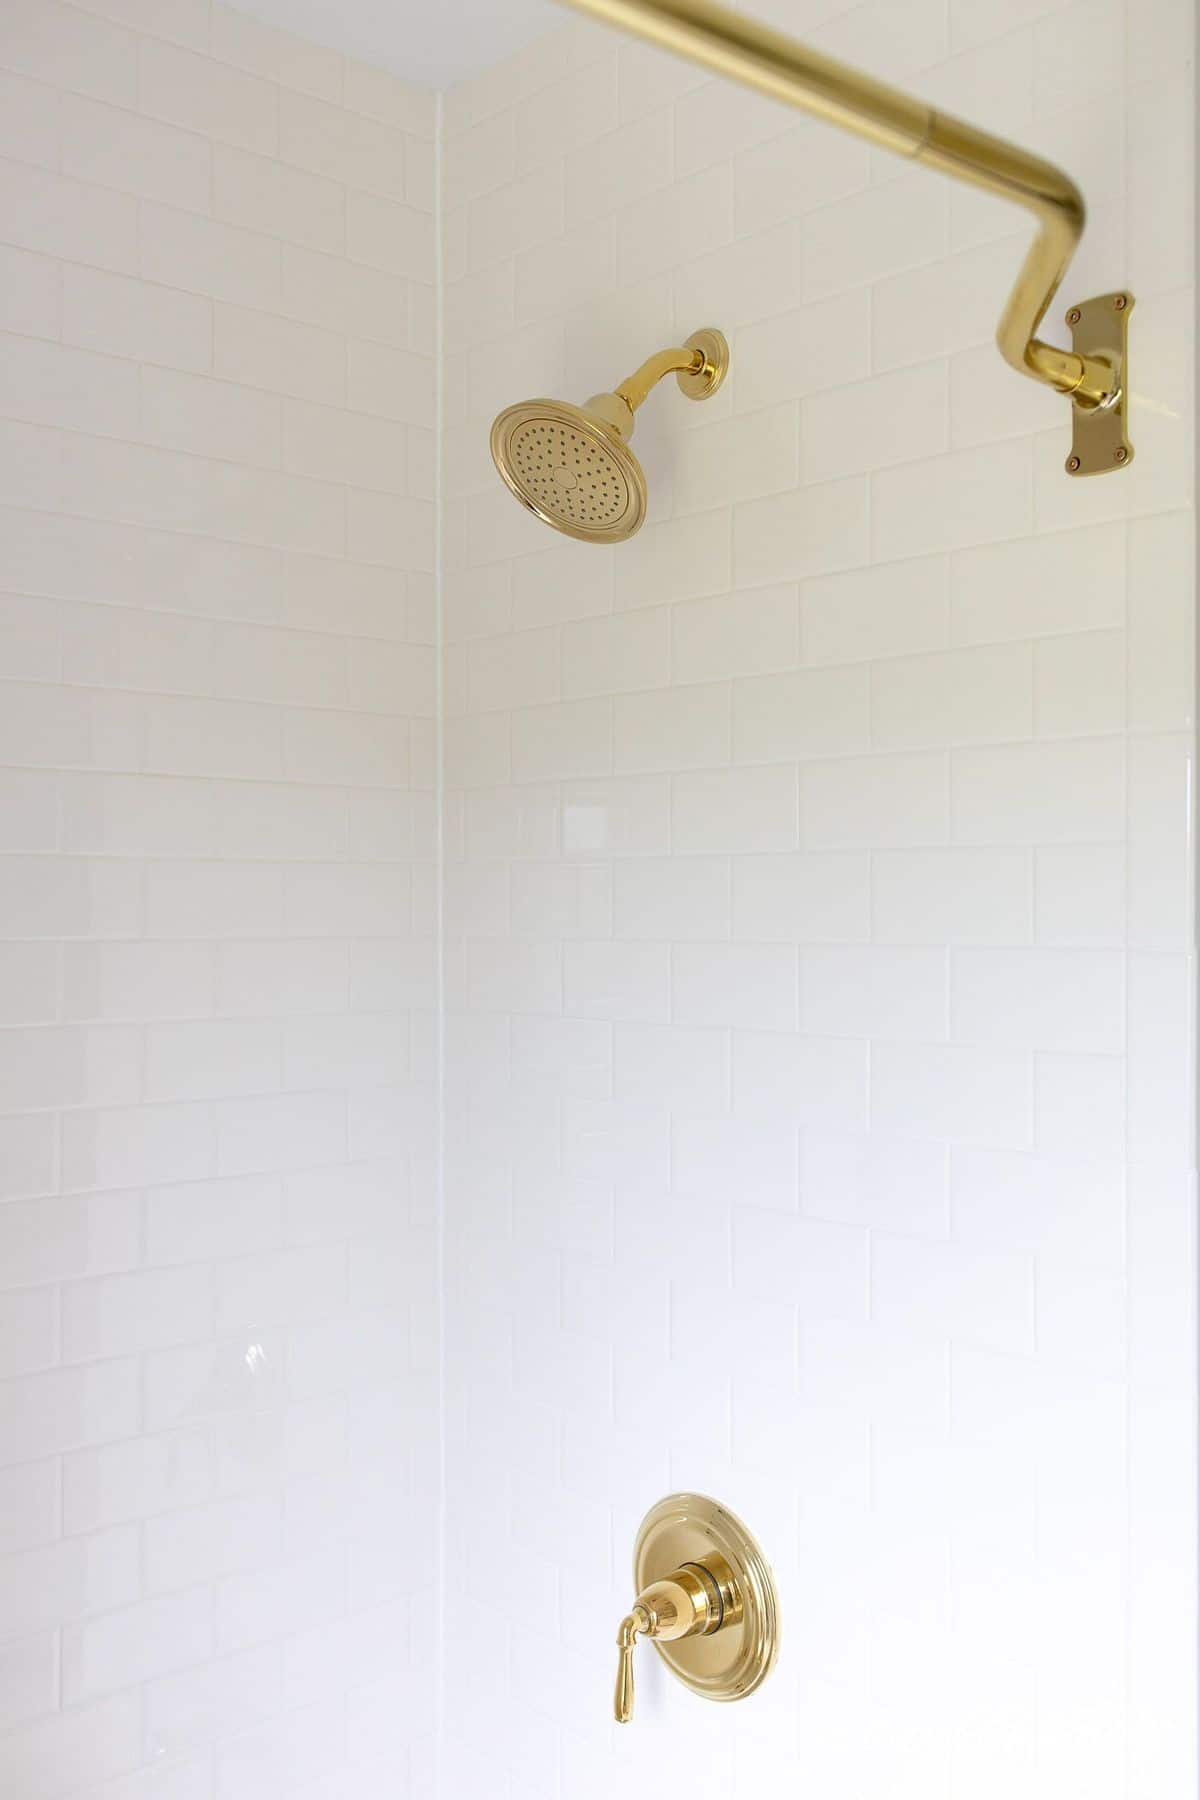 White subway til shower with brass showerhead and bathtub fixtures. #spatub #airbath #airtub